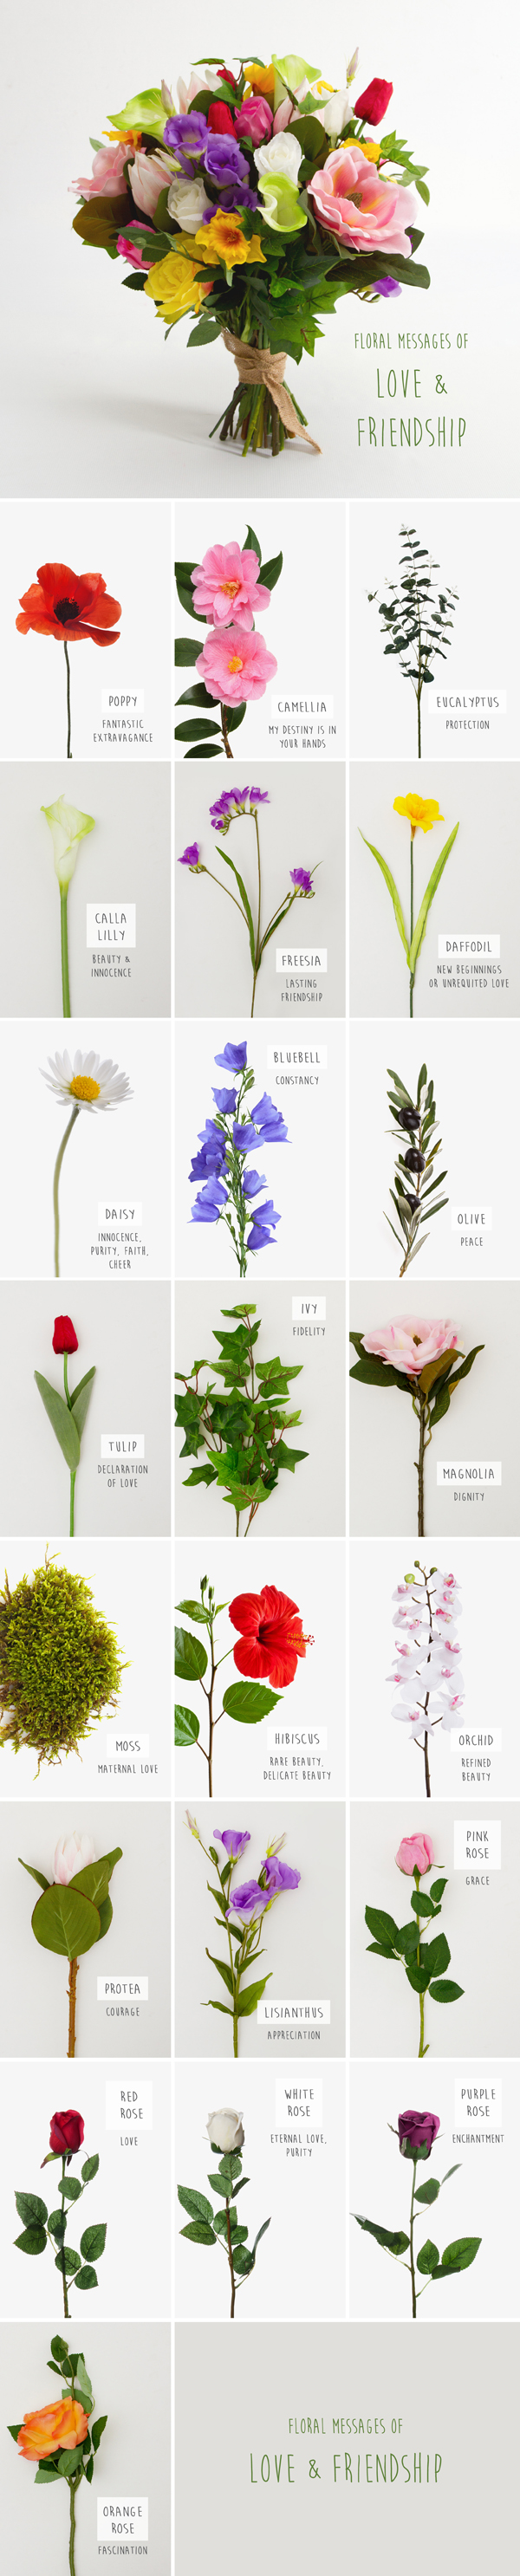 Floriography Chart of Flowers